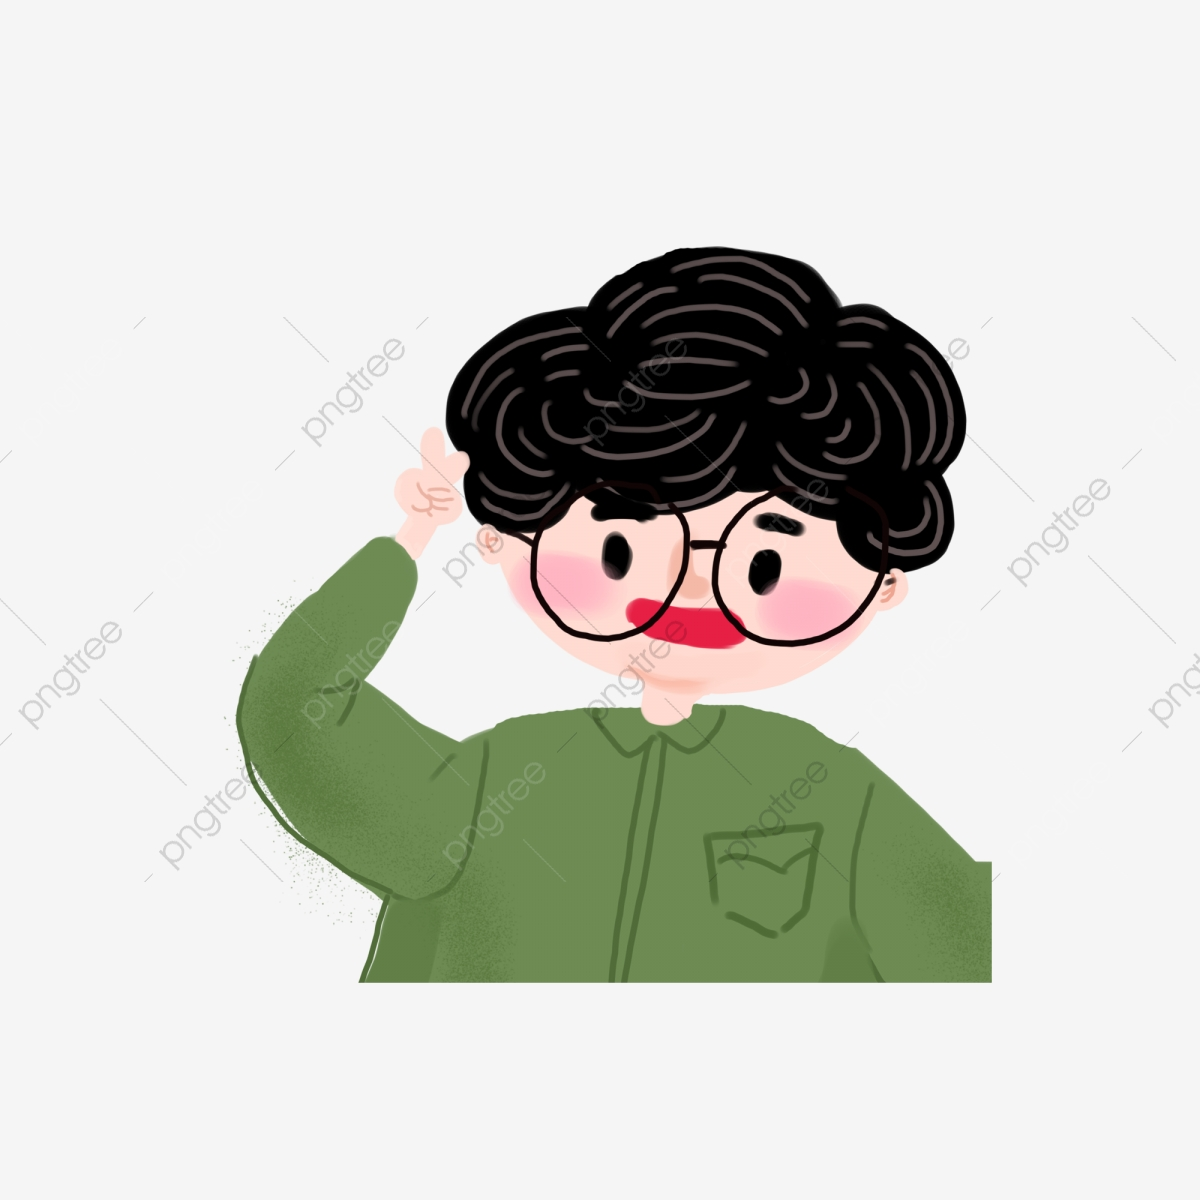 Boy With Curly Hair Wearing Glasses Cartoon Element Book Angry